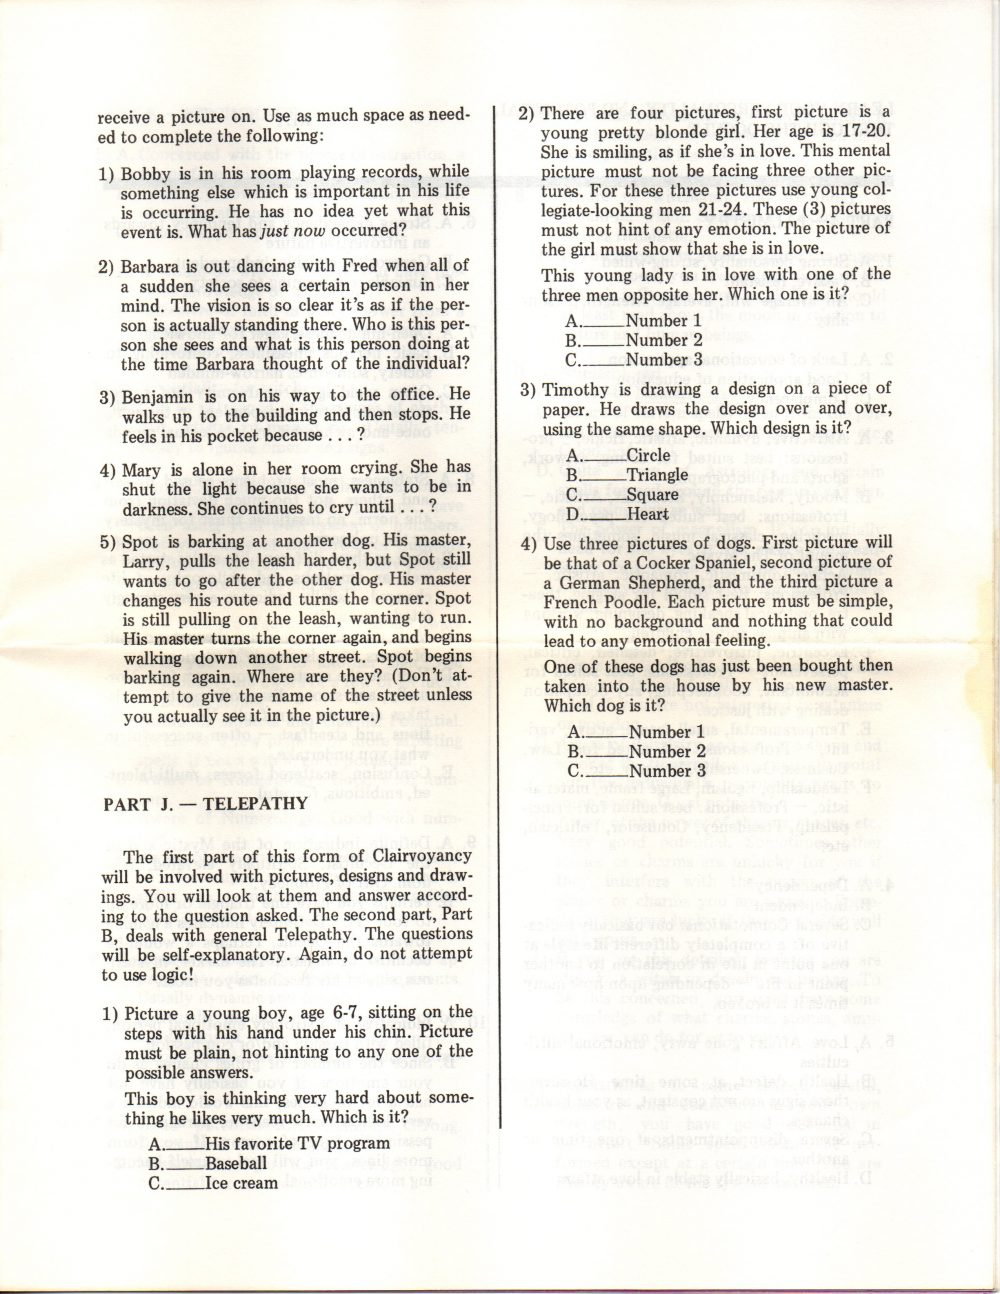 Ten do it yourself psychic occult tests 1972 object name ten do it yourself psychic occult tests maker and year occultima ltdrobert wasserman 1972 object type booklet solutioingenieria Gallery